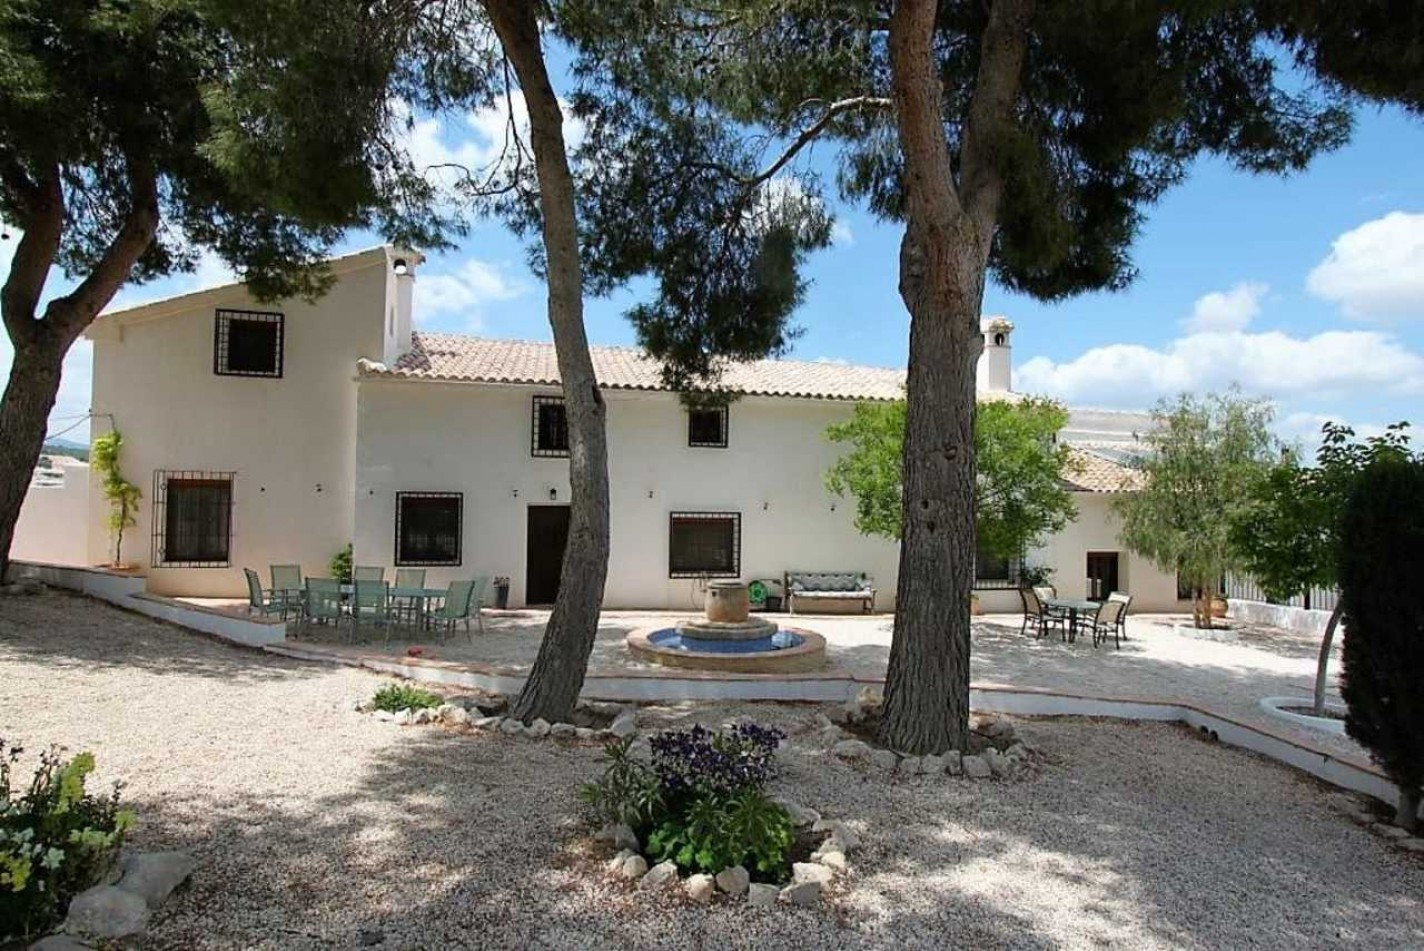 Featured Villa in Murcia available on Girasol today